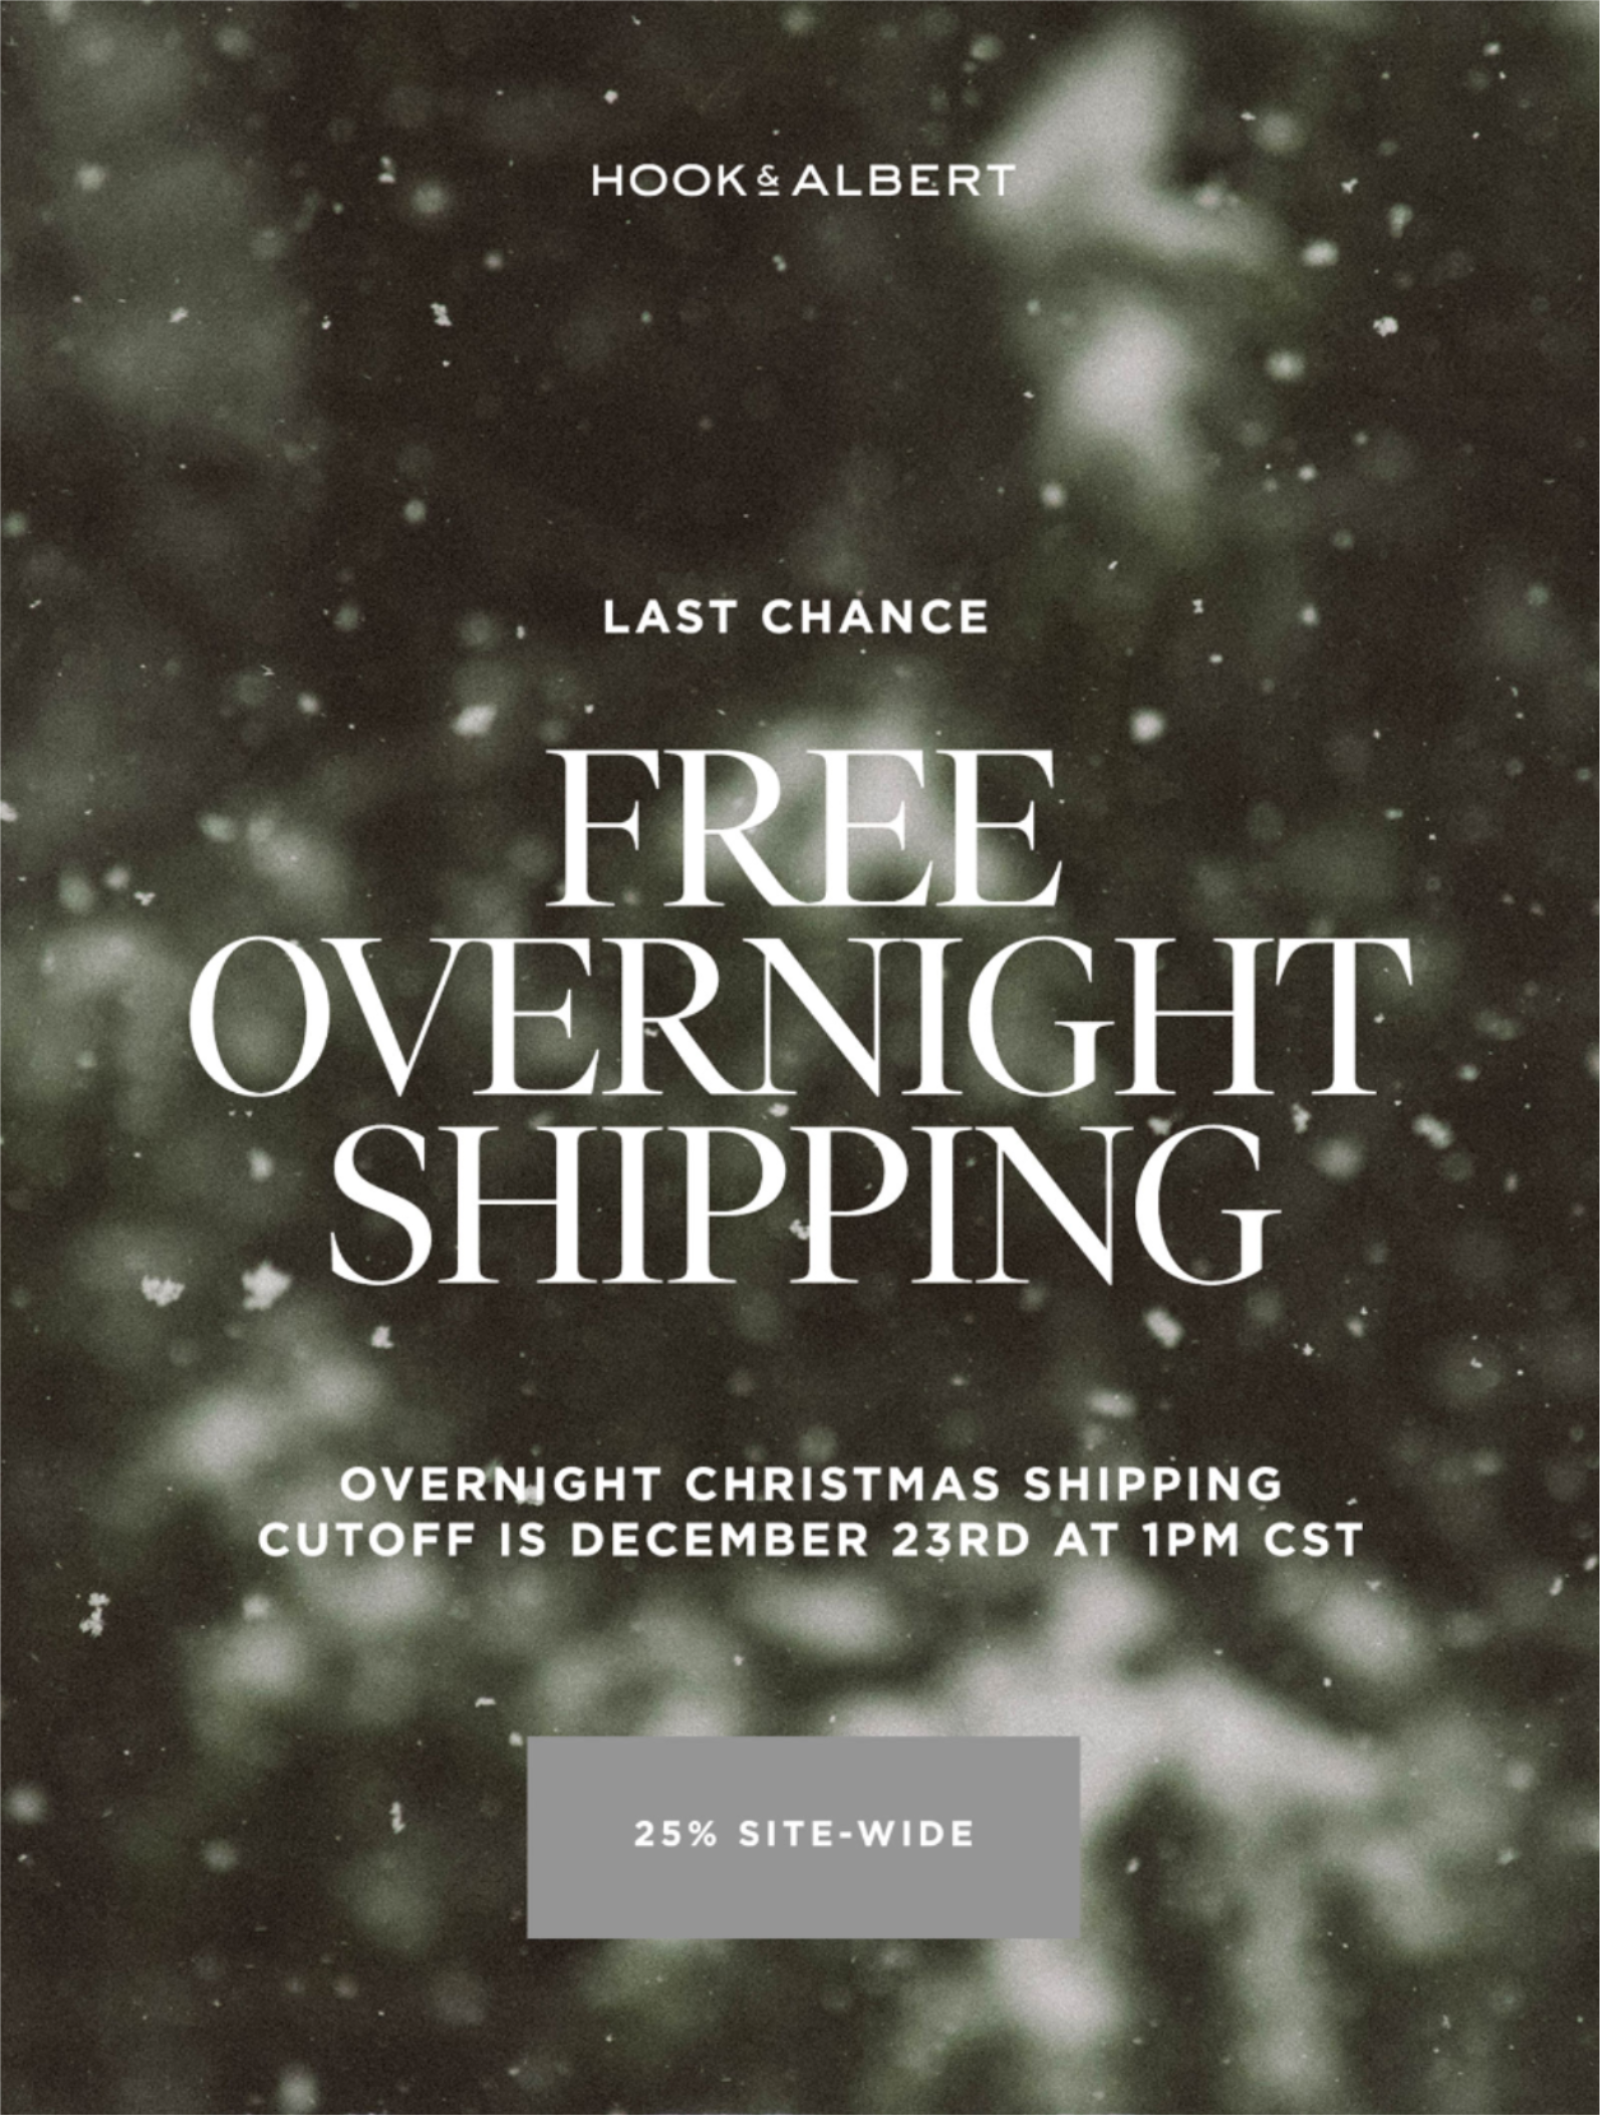 1Pm Pst To Cst hook & albert: final hours: complimentary overnight shipping